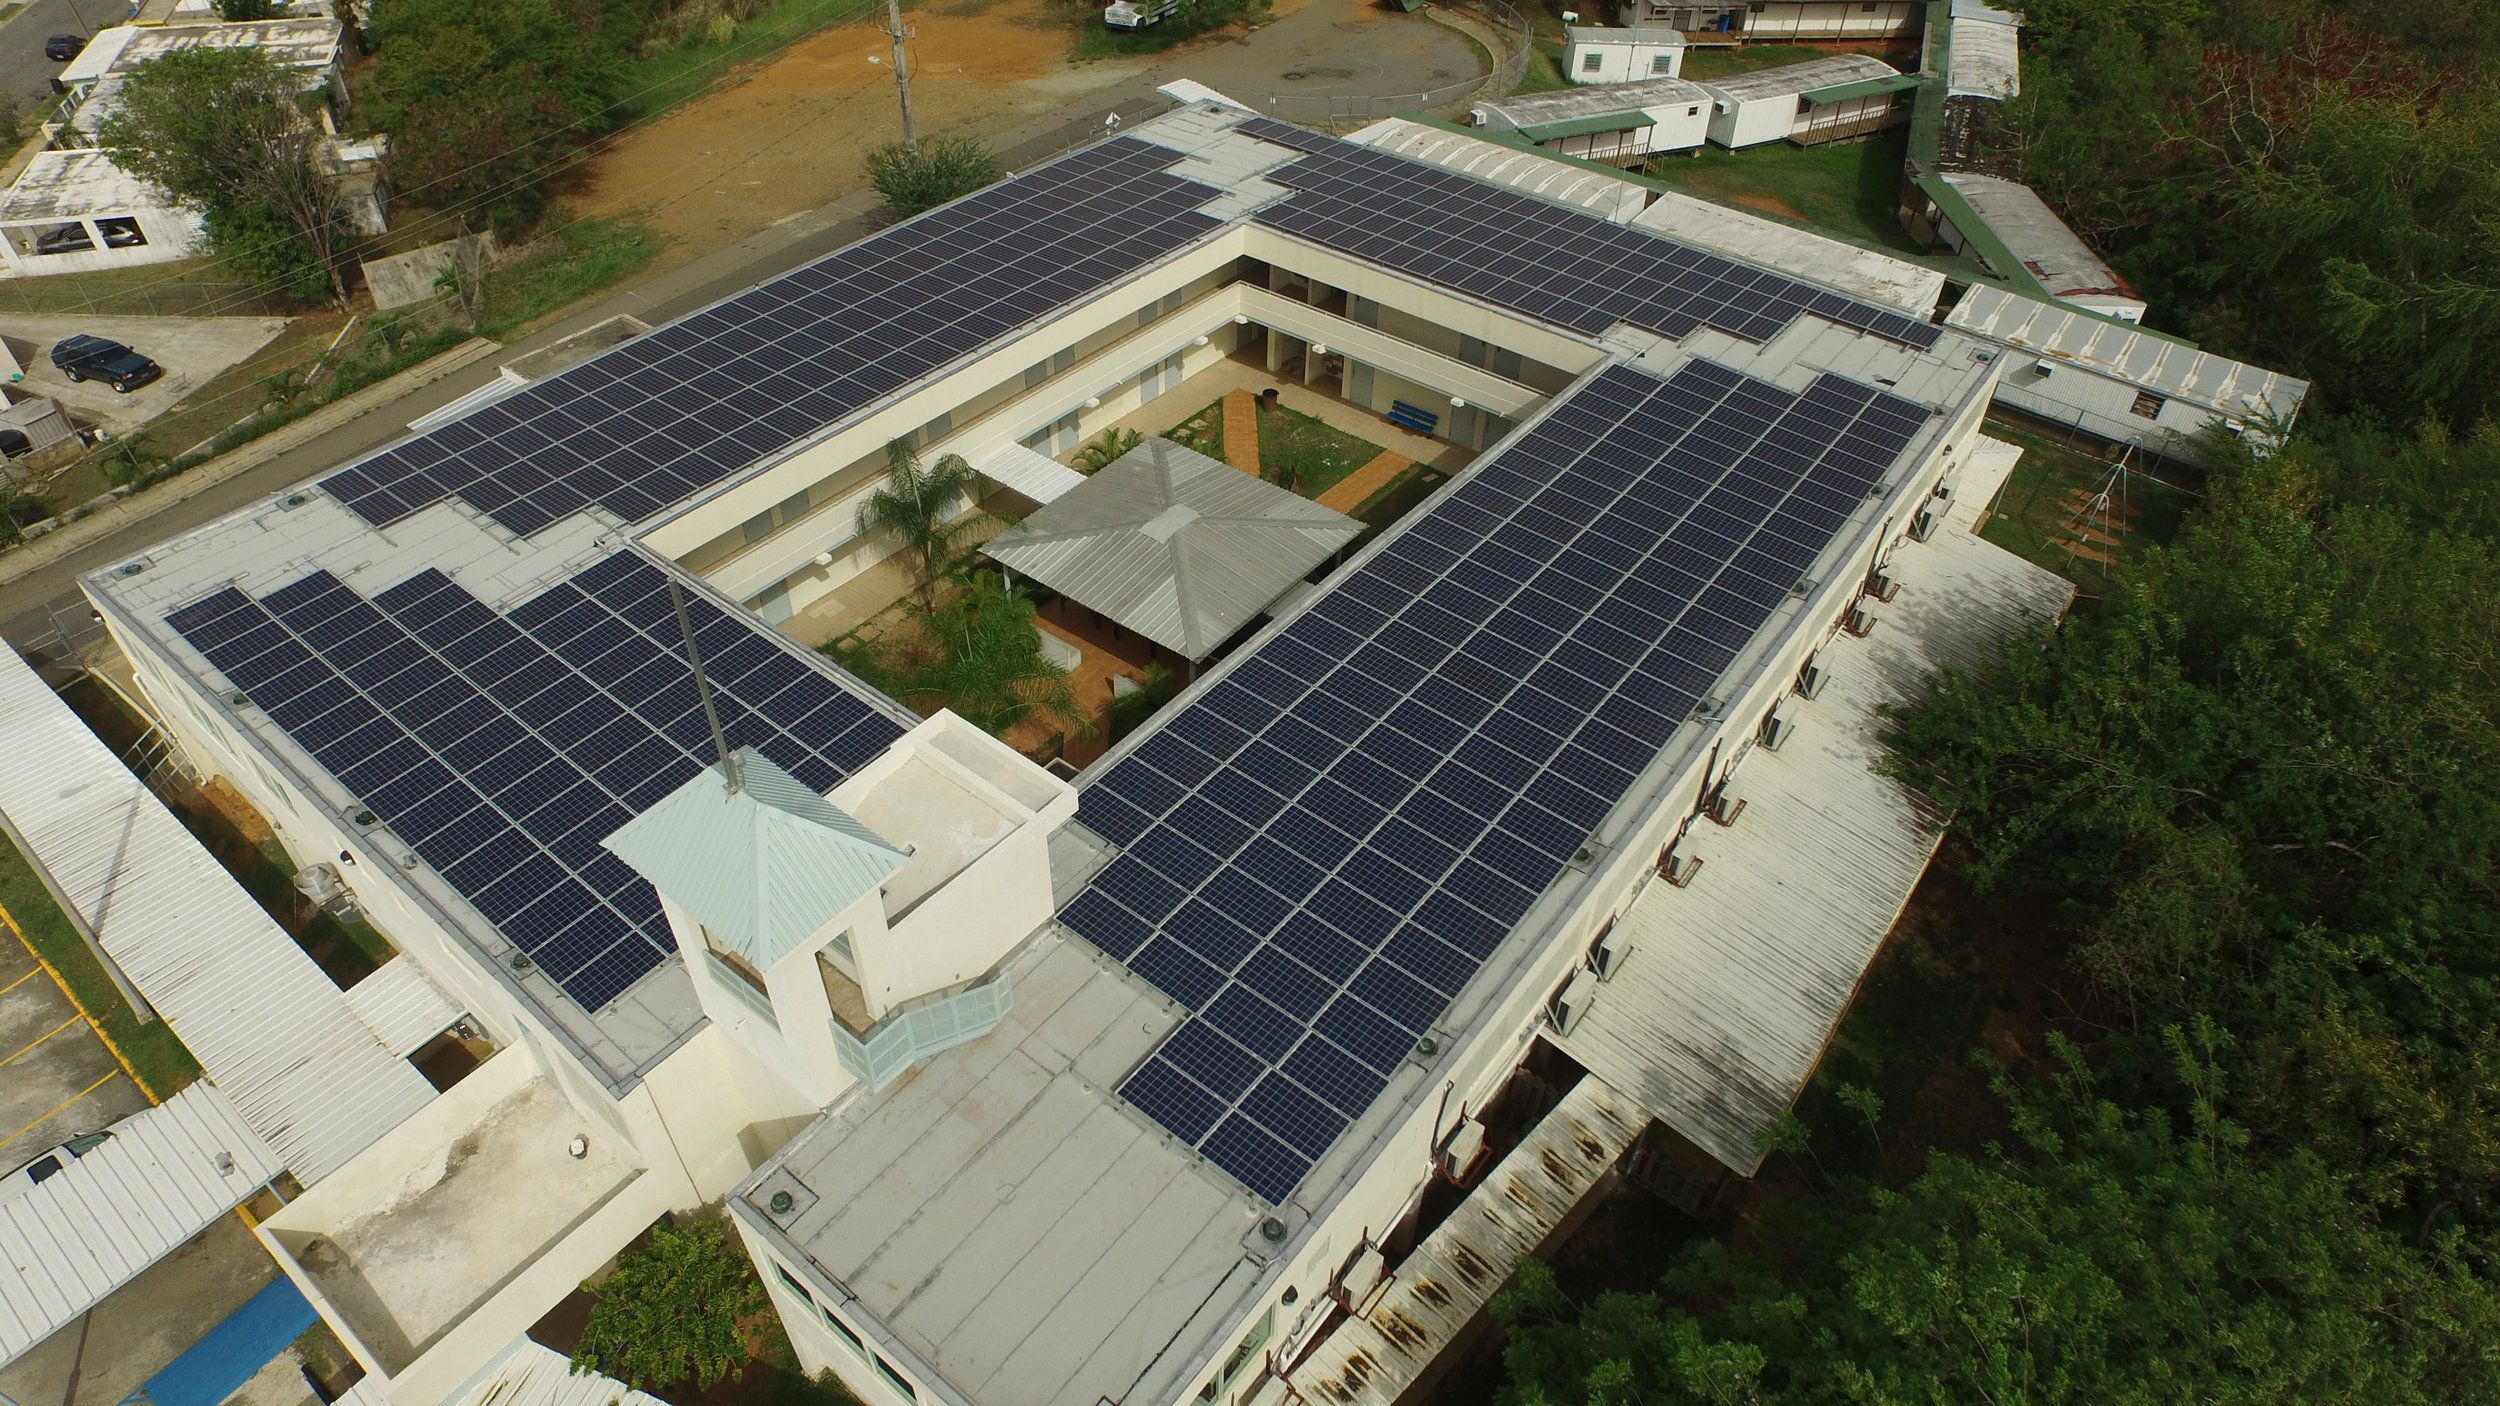 Colegio Hector Urdaneta - • 110 Kw PV Roof top• Fixed tilt system installation• Alusin Solar rack assembly• 440 Q-Cells PV modules• 4 SMA InvertersTripower 24TL-US• AC/DC Installation• 1000V Design for production efficiency